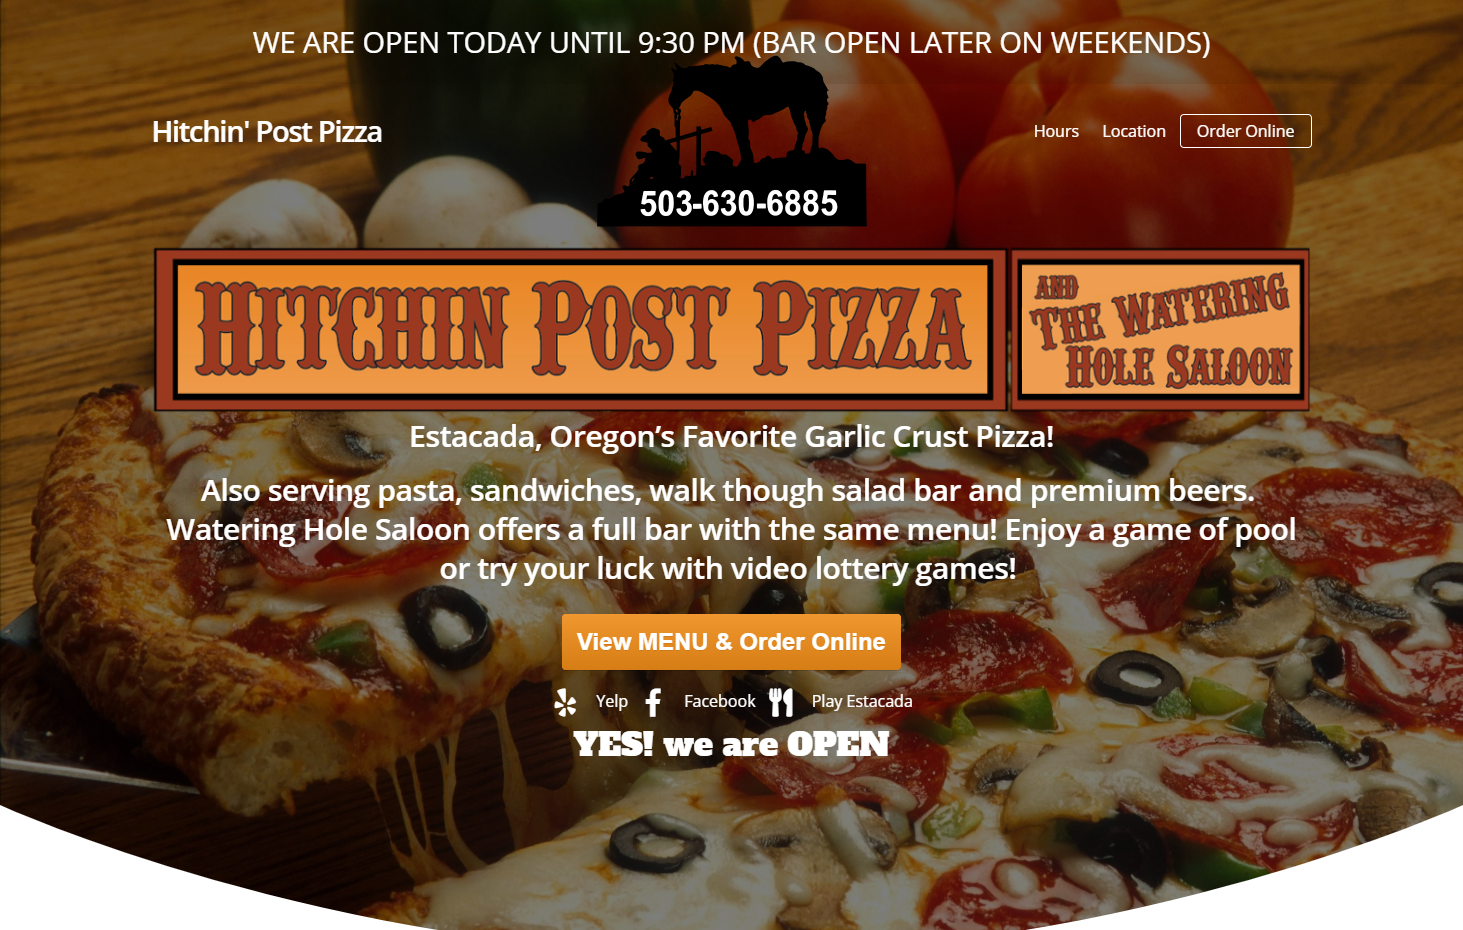 Order Online Hitchin Post Pizza